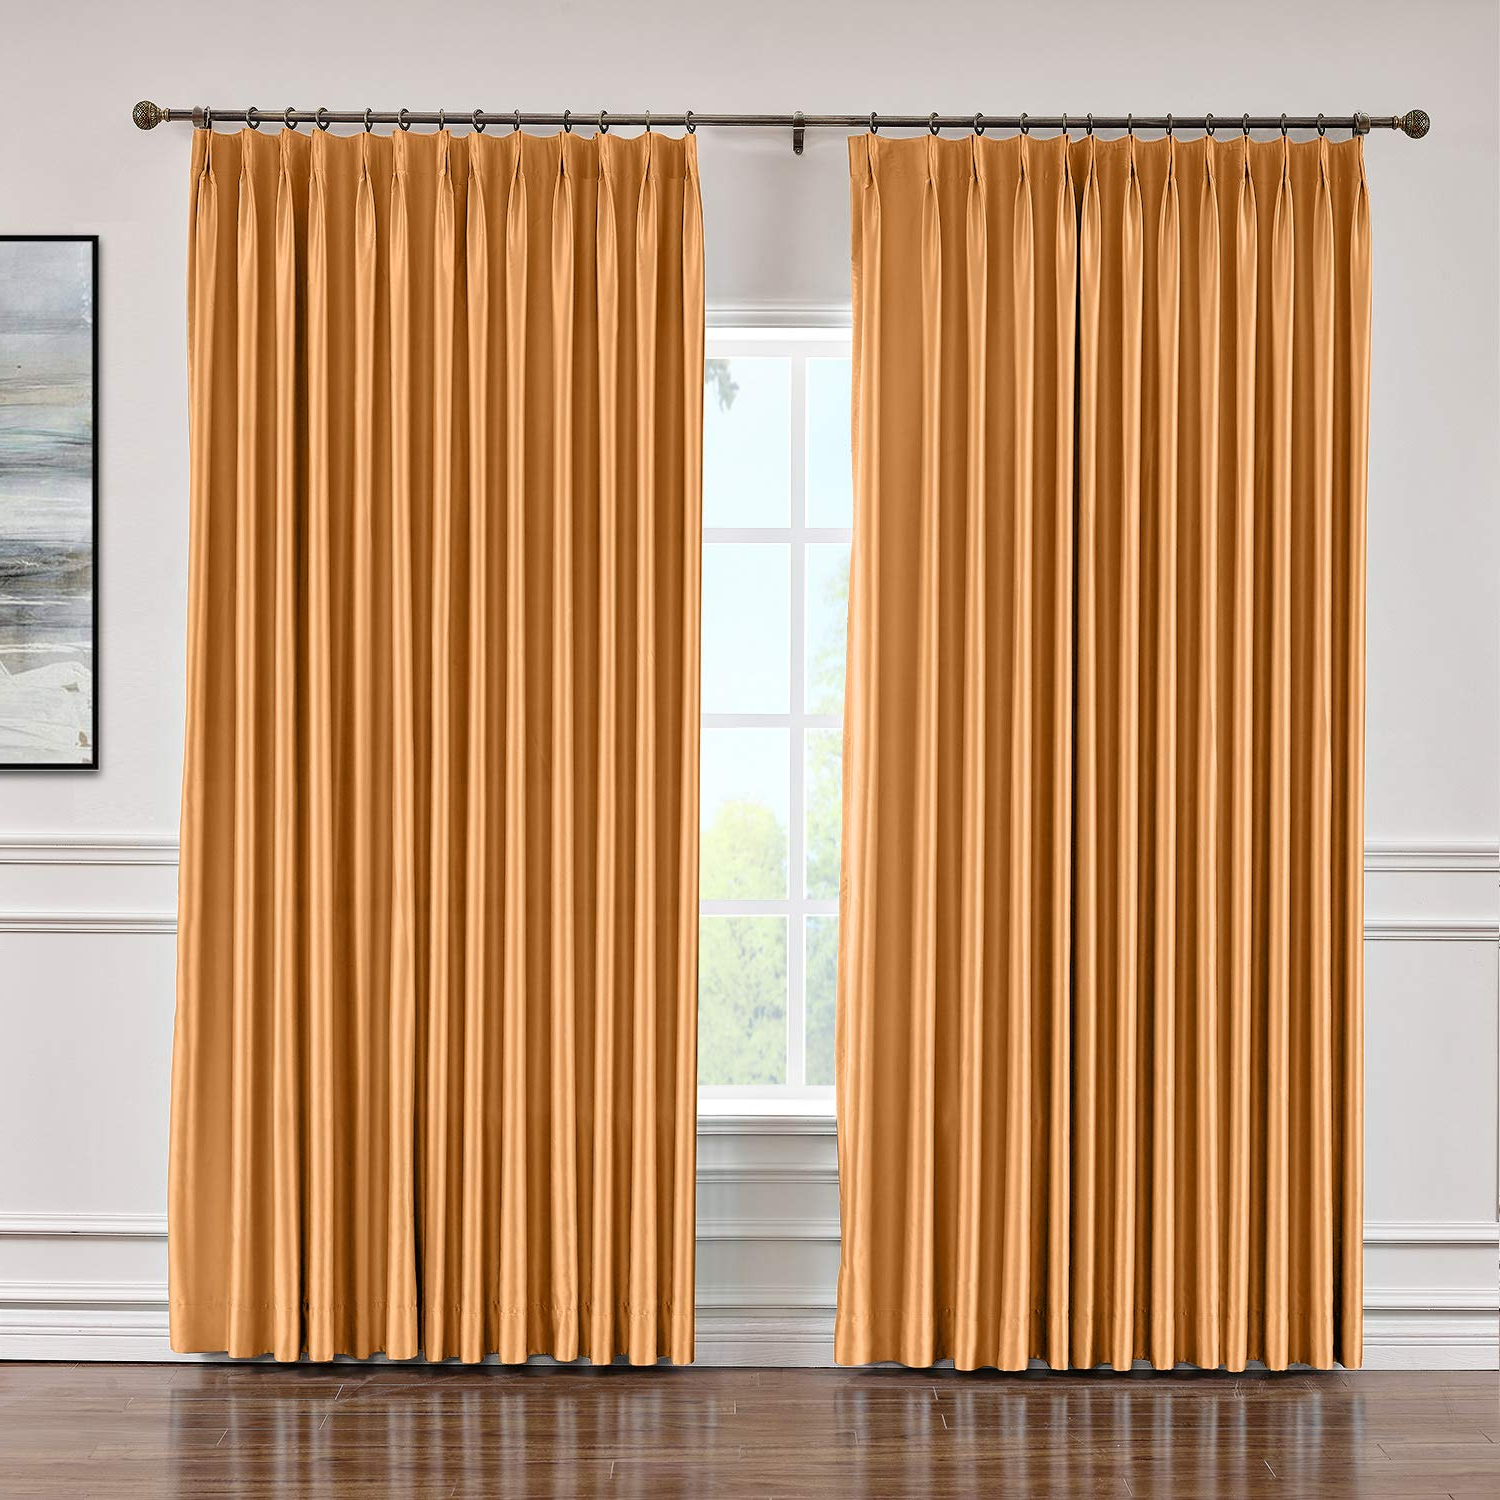 Faux Silk Extra Wide Blackout Single Curtain Panels For Fashionable Macochico Extra Wide Soft Faux Dupioni Silk Curtain Pinch Pleat Blackout  Drapery Indoor Panels For Bedroom Meeting Room Living Room Office, Copper  120 (Gallery 13 of 20)